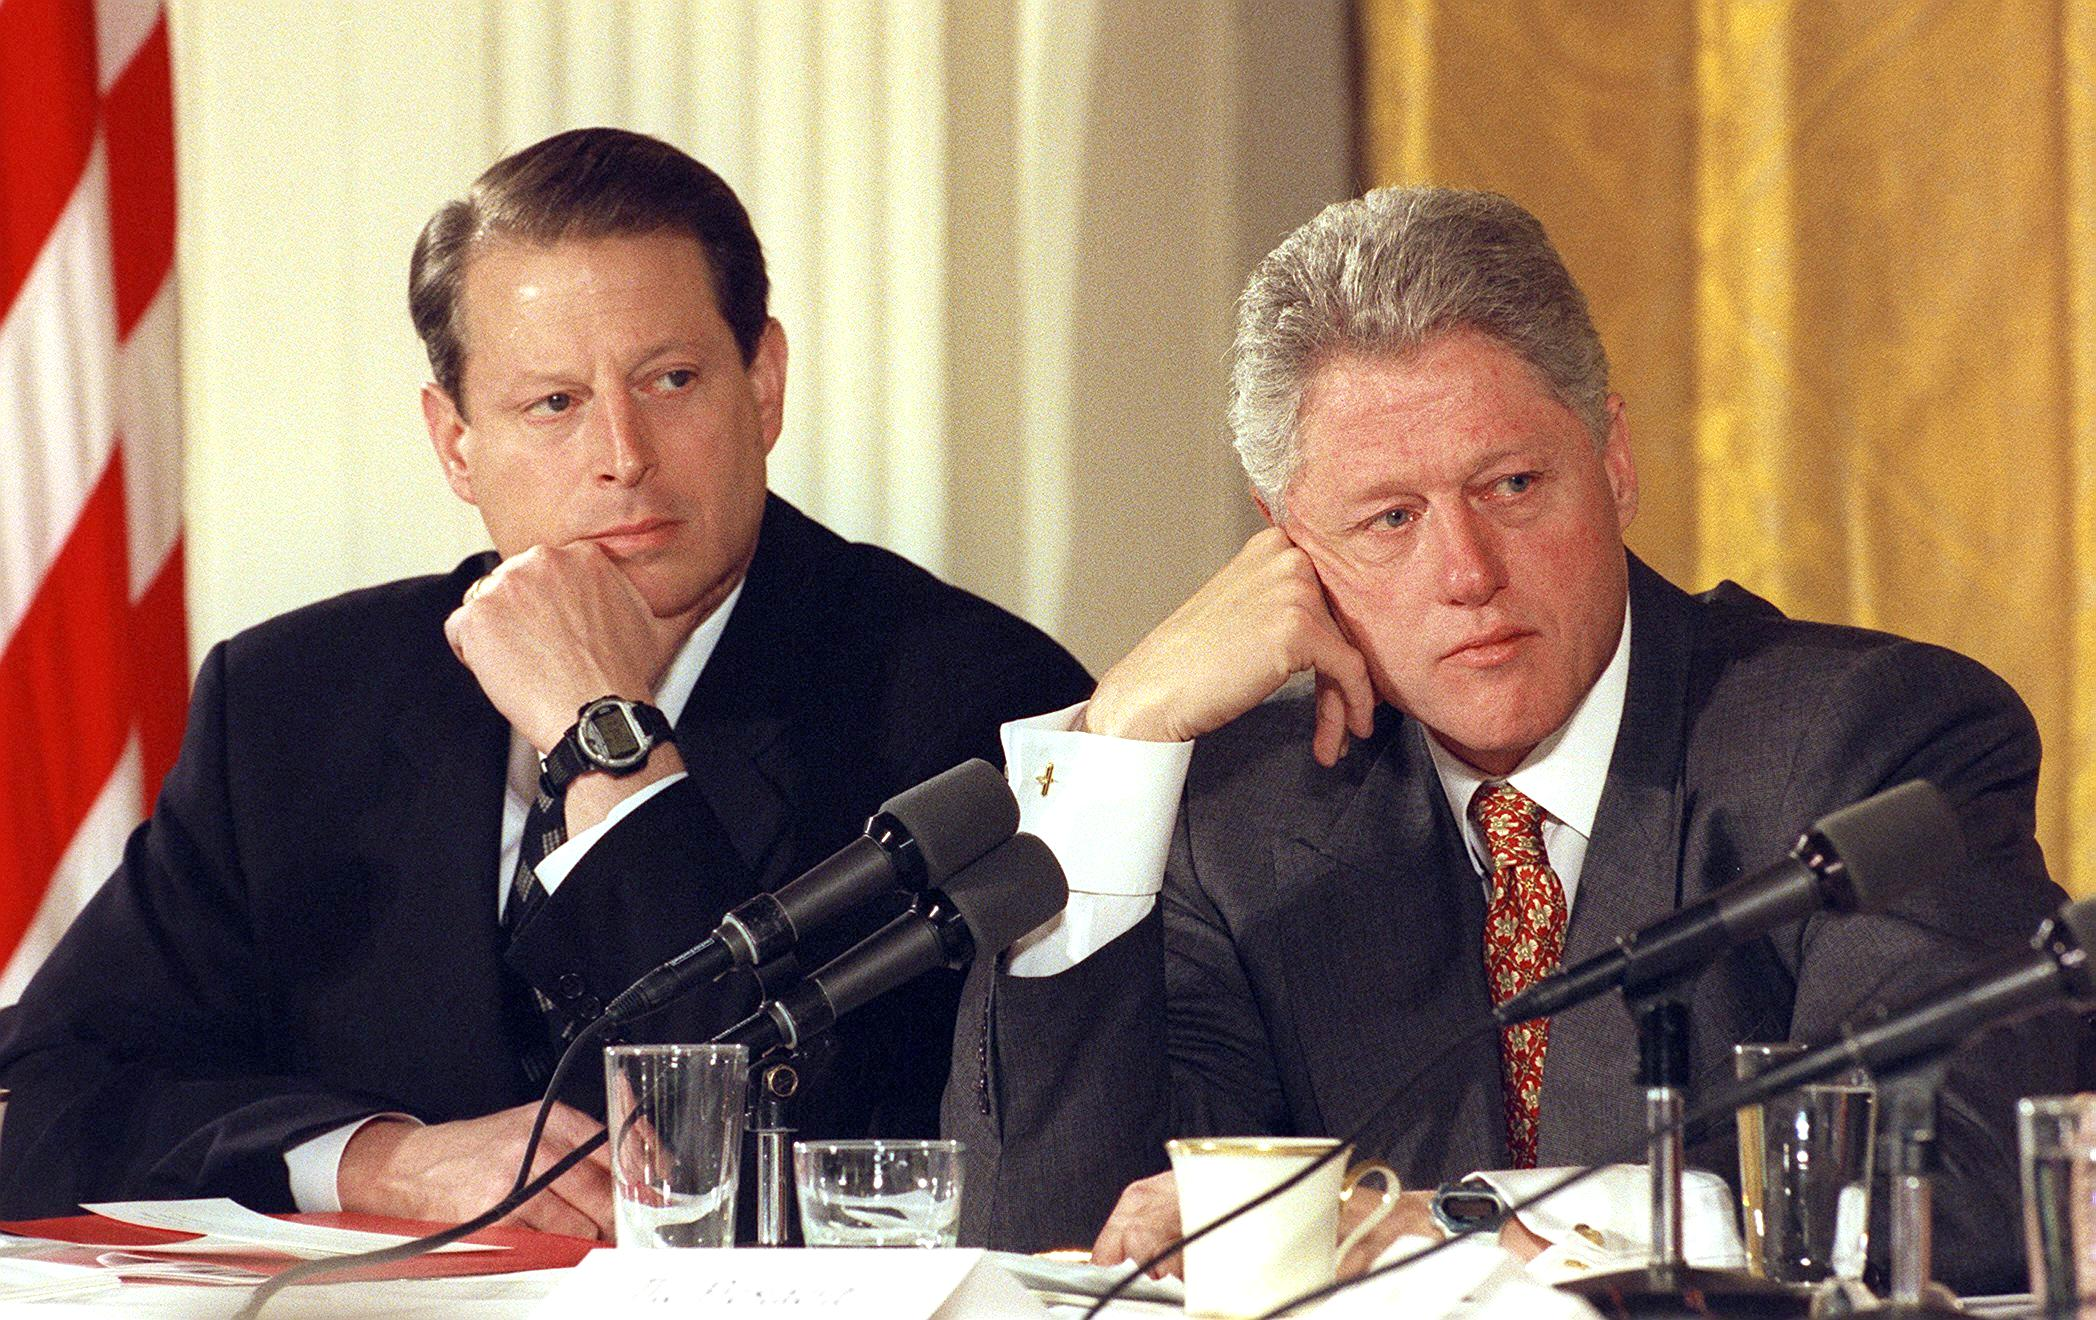 US President Bill Clinton and Vice President Al Gore